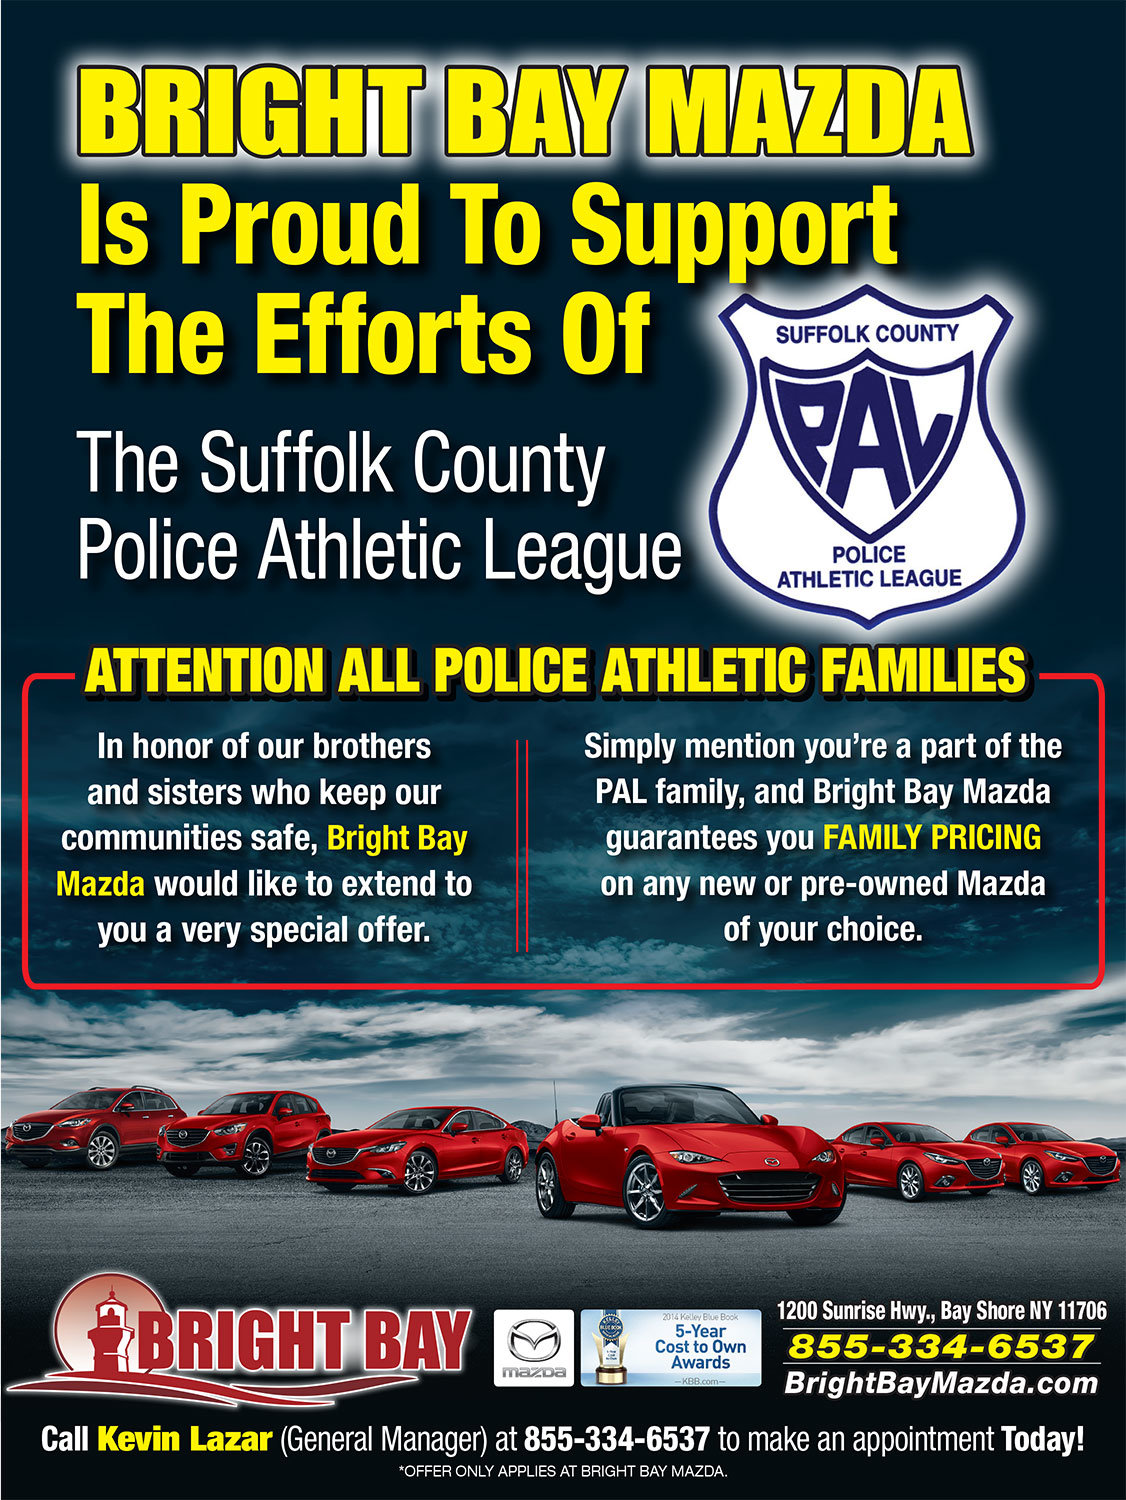 Suffolk County Police Athletic League